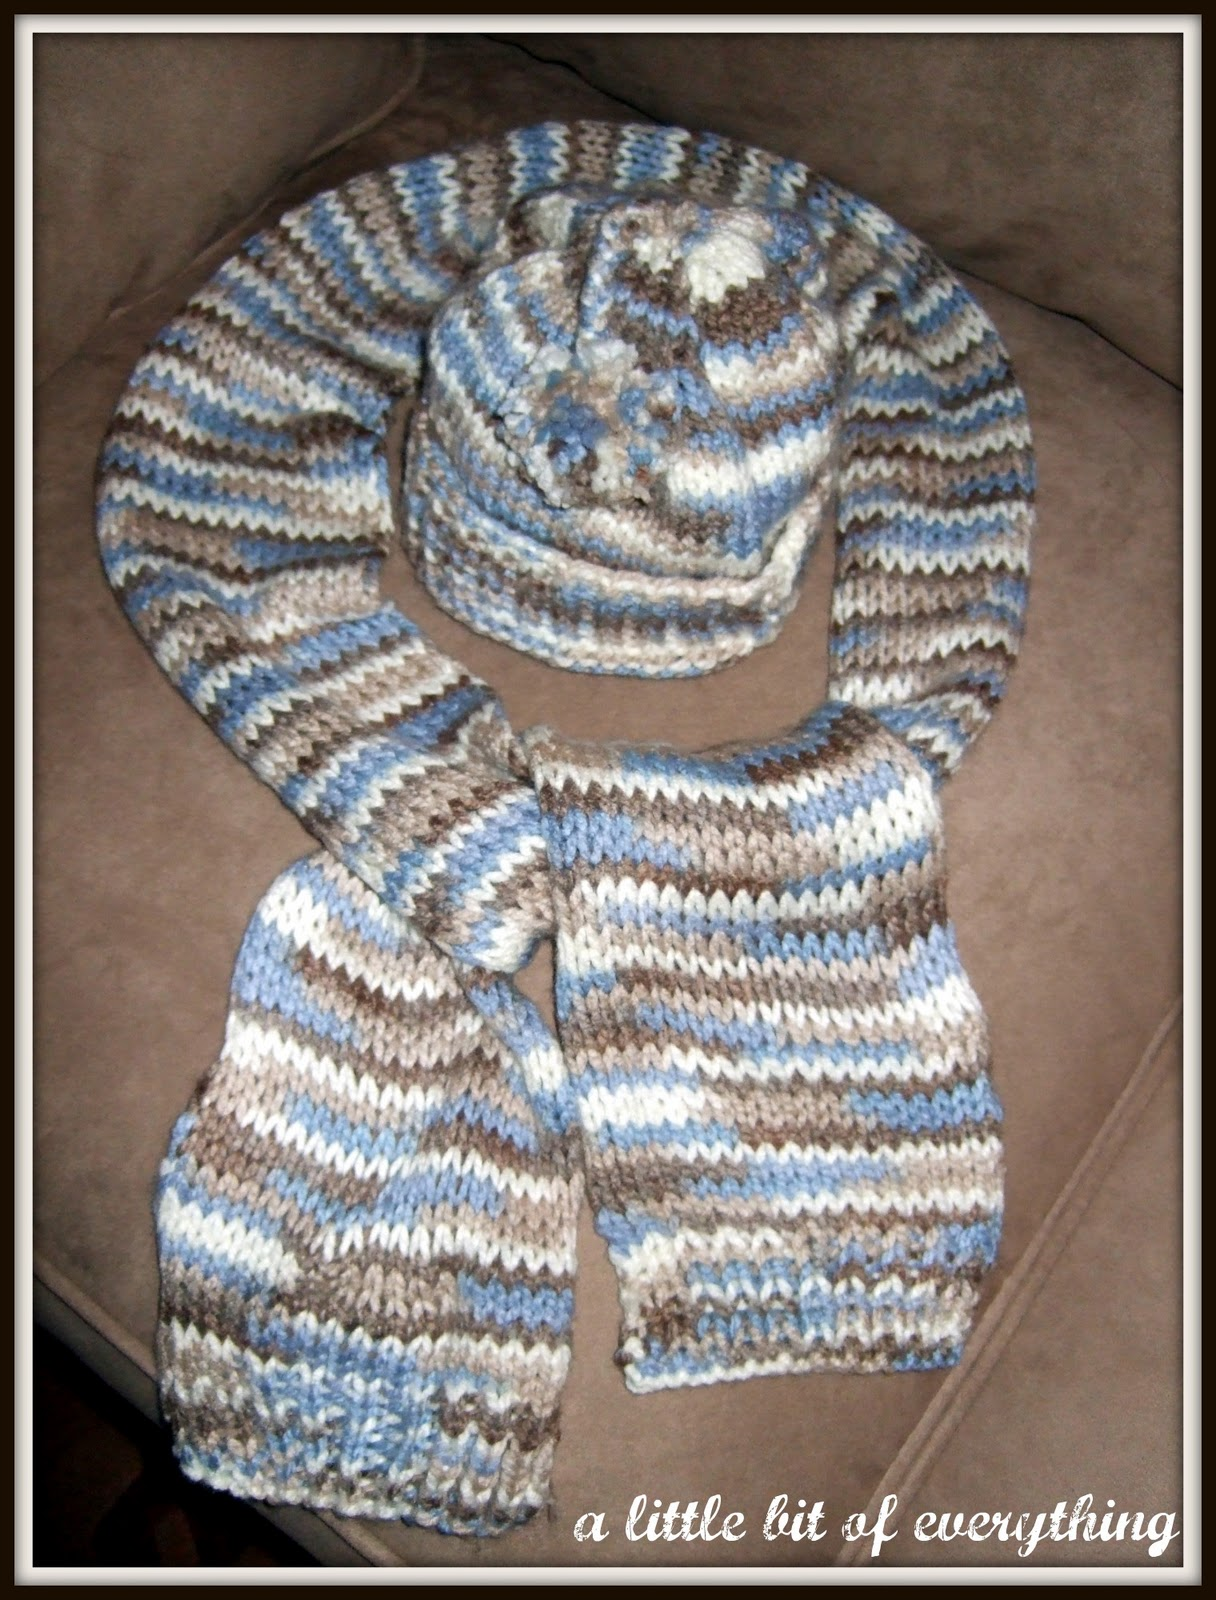 Knitting Pattern For Baby Hat And Scarf : a little bit of everything: Needlework: Babys Hat and Scarf, Knitted